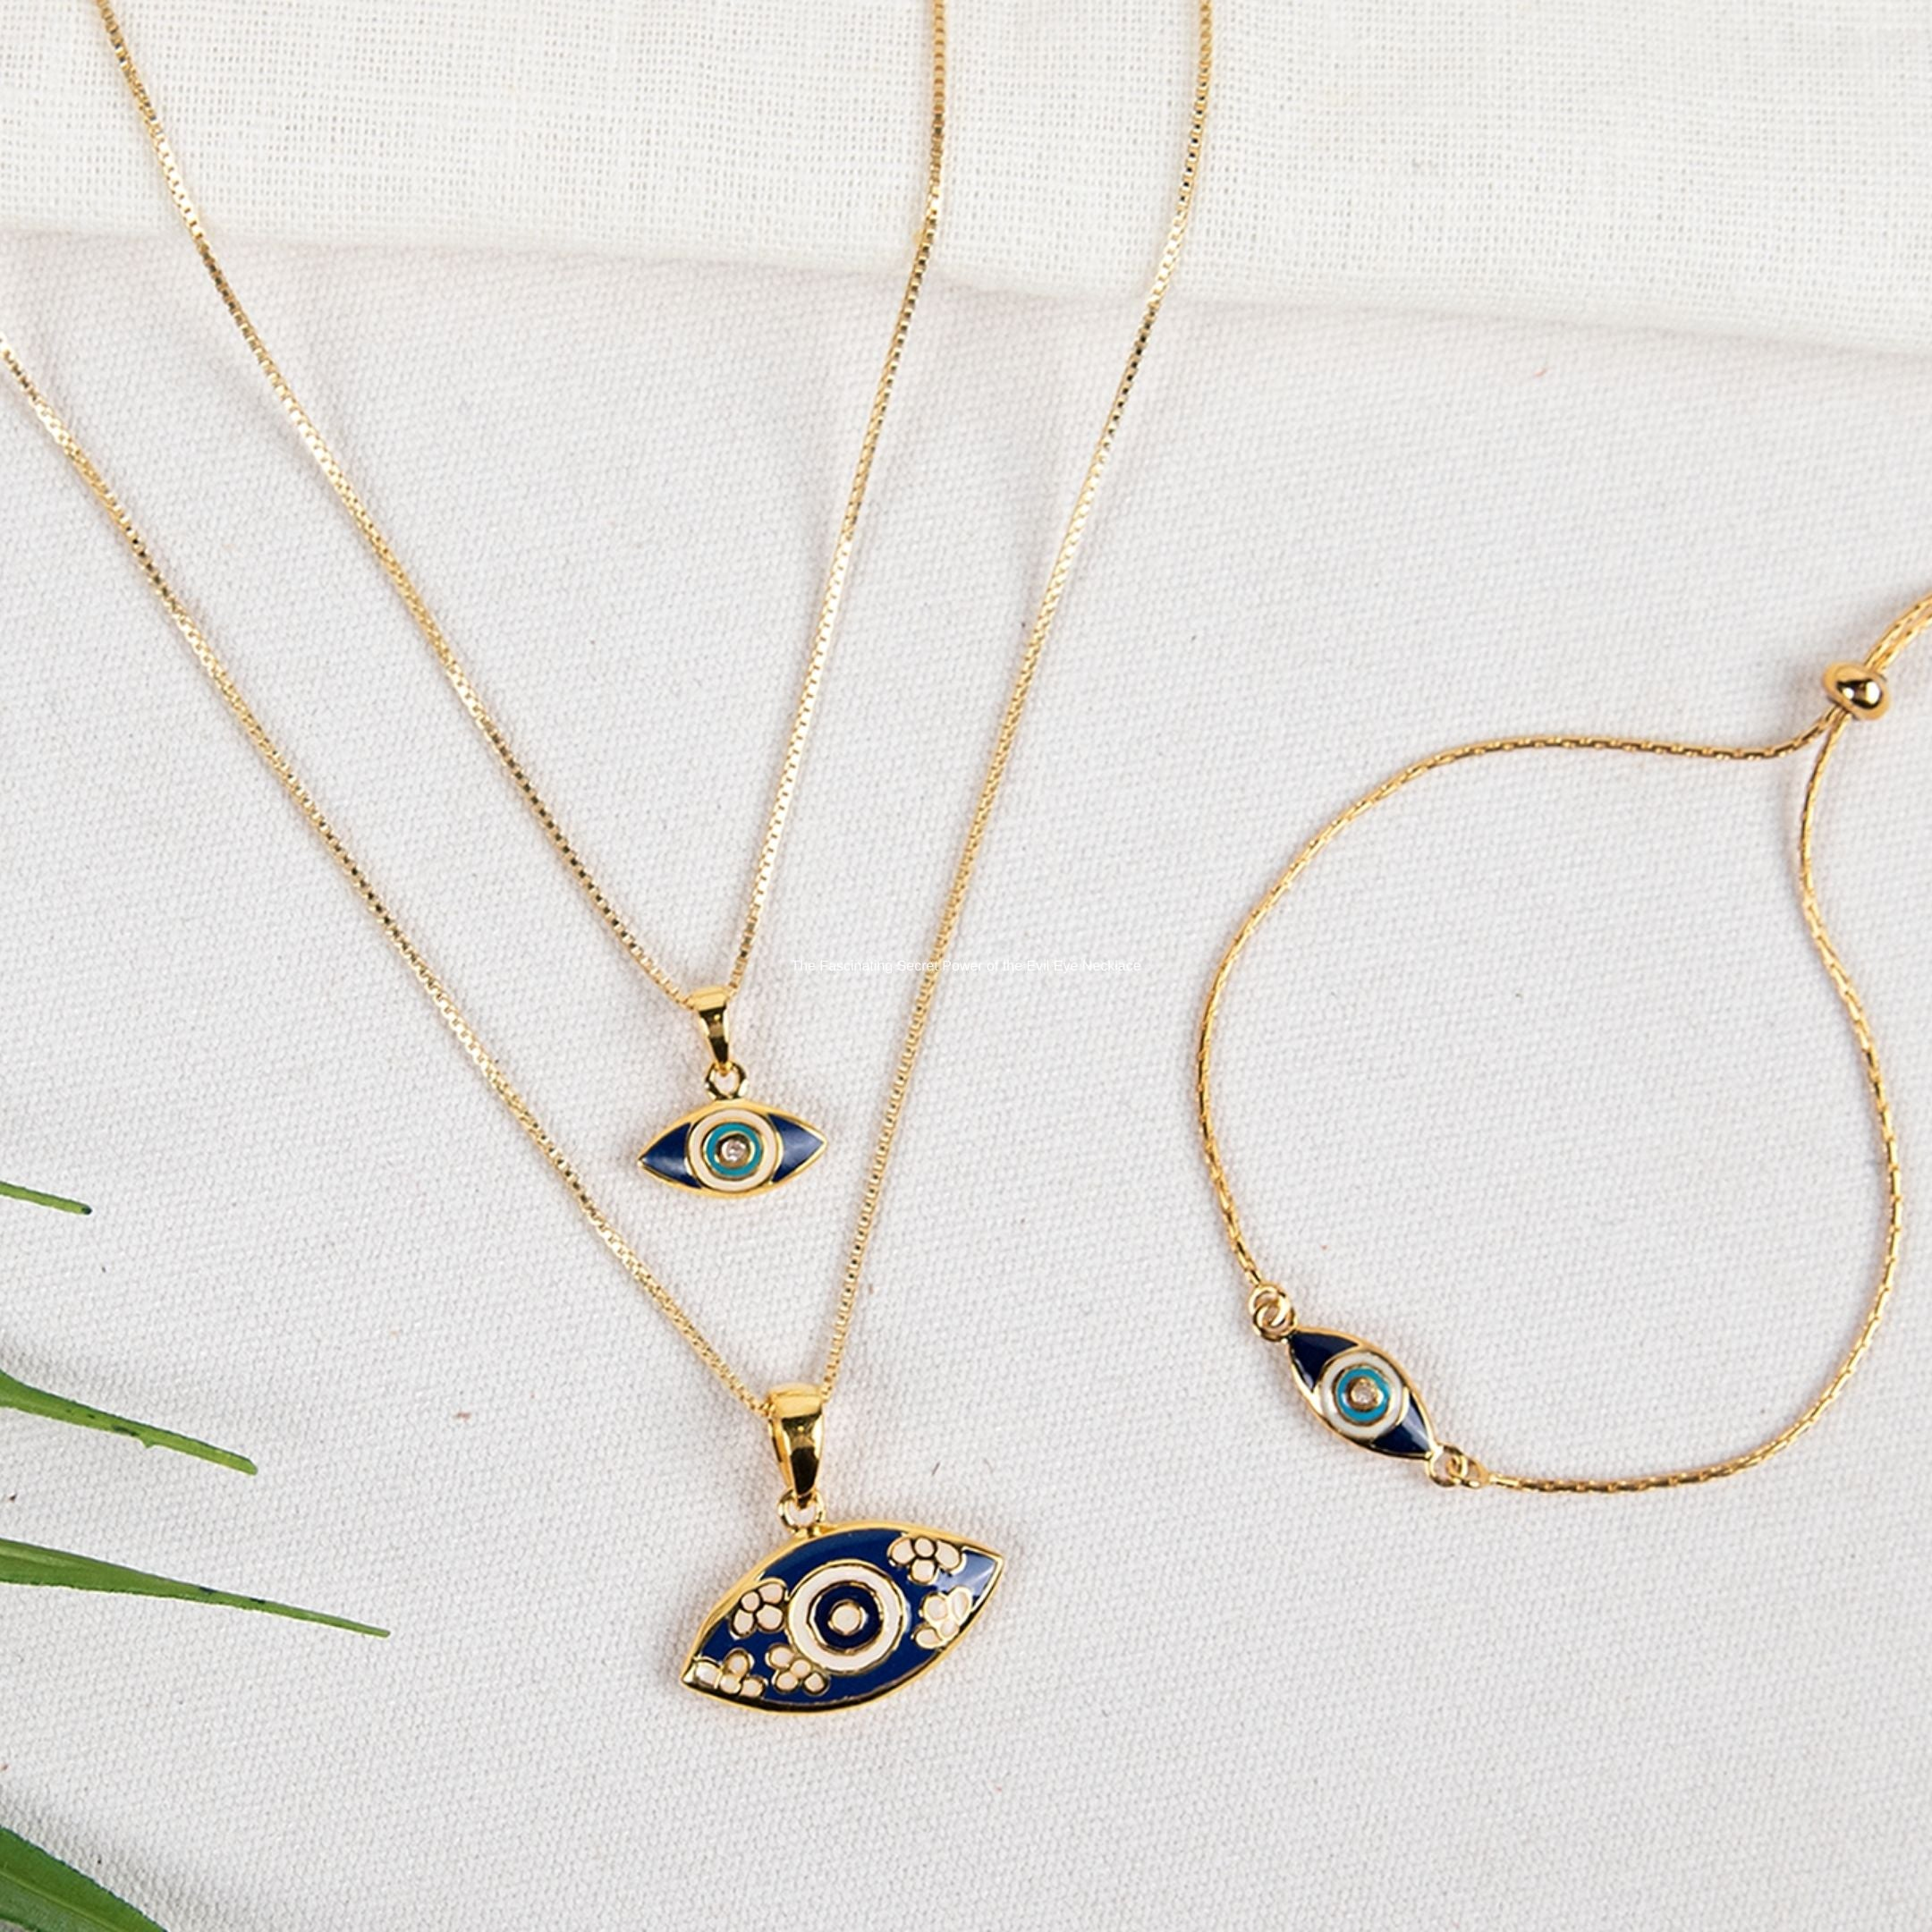 The Fascinating Secret Power of the Evil Eye Necklace